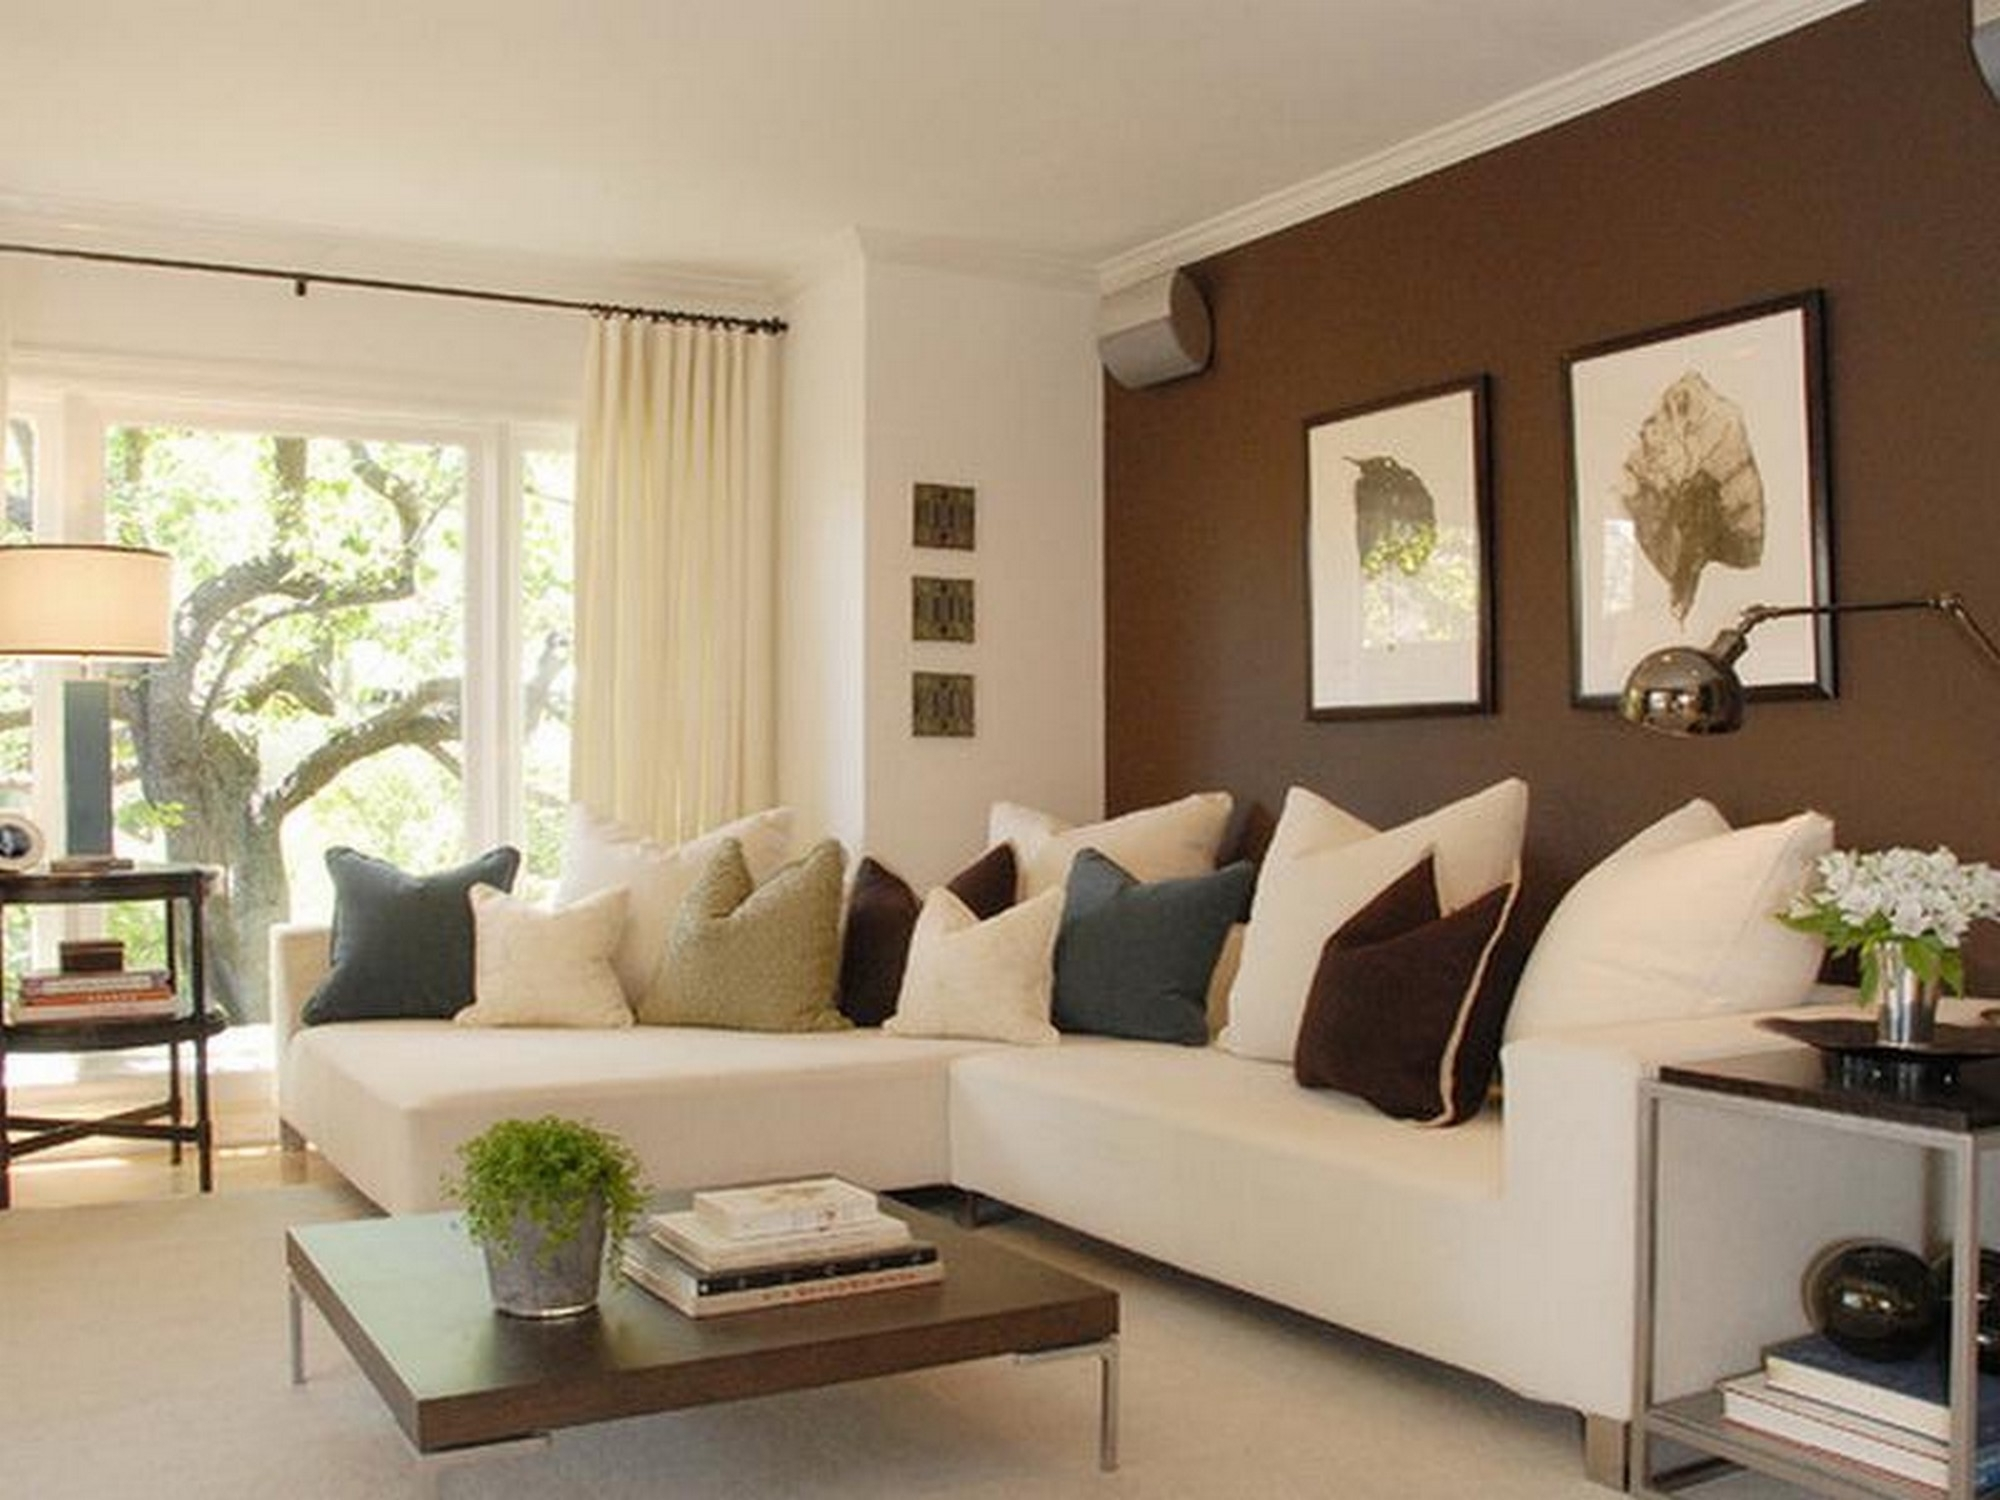 Exquisite Wall Painting Designs For Living Room Of Cream Paint Color Ideas Suggested Colors Shades Acnn Decor